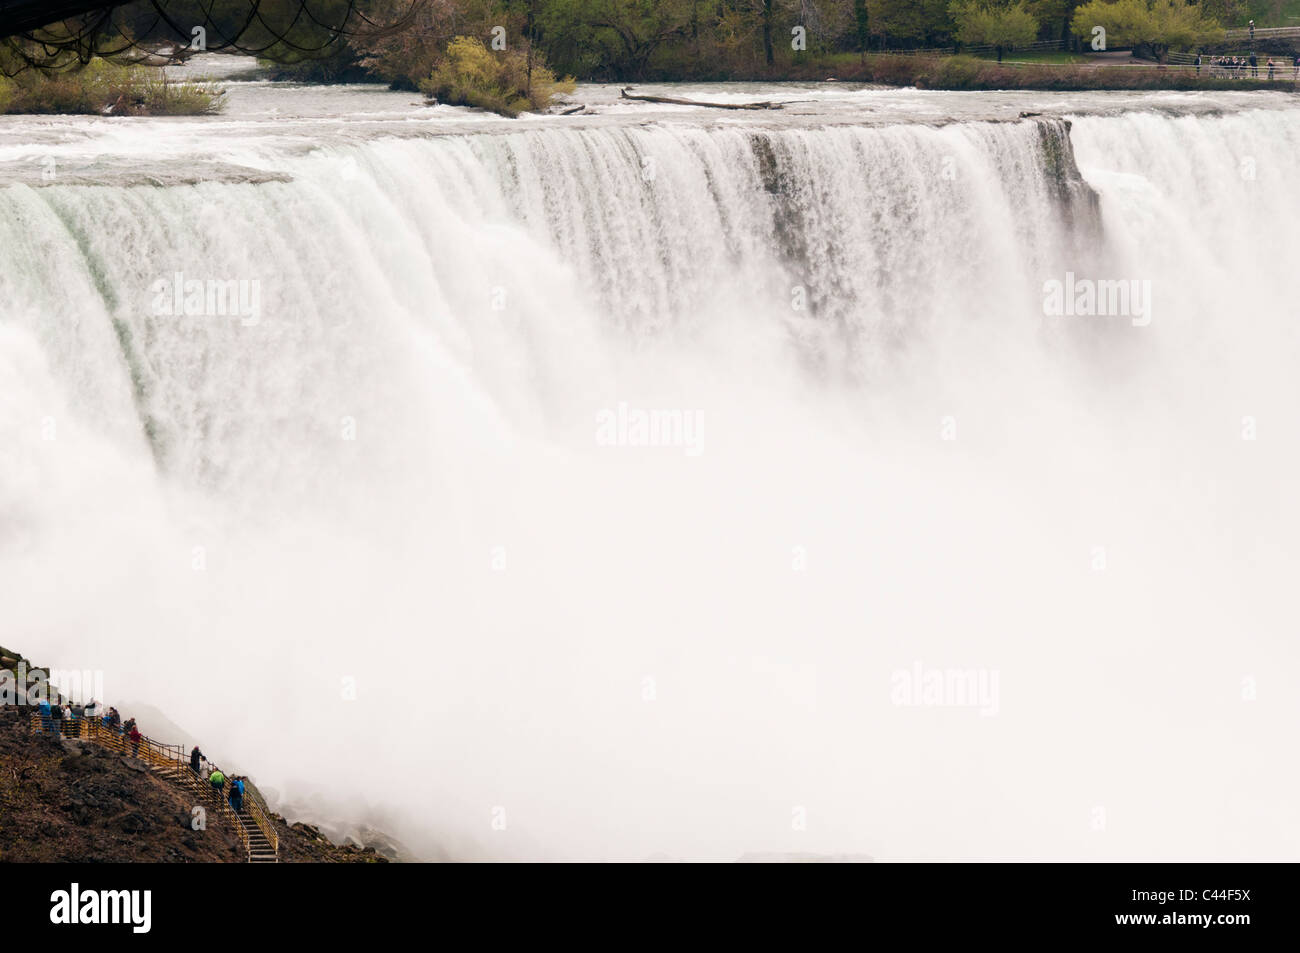 Lower catwalks at Prospect Point offer a unique perspective and scale of the American Falls. - Stock Image